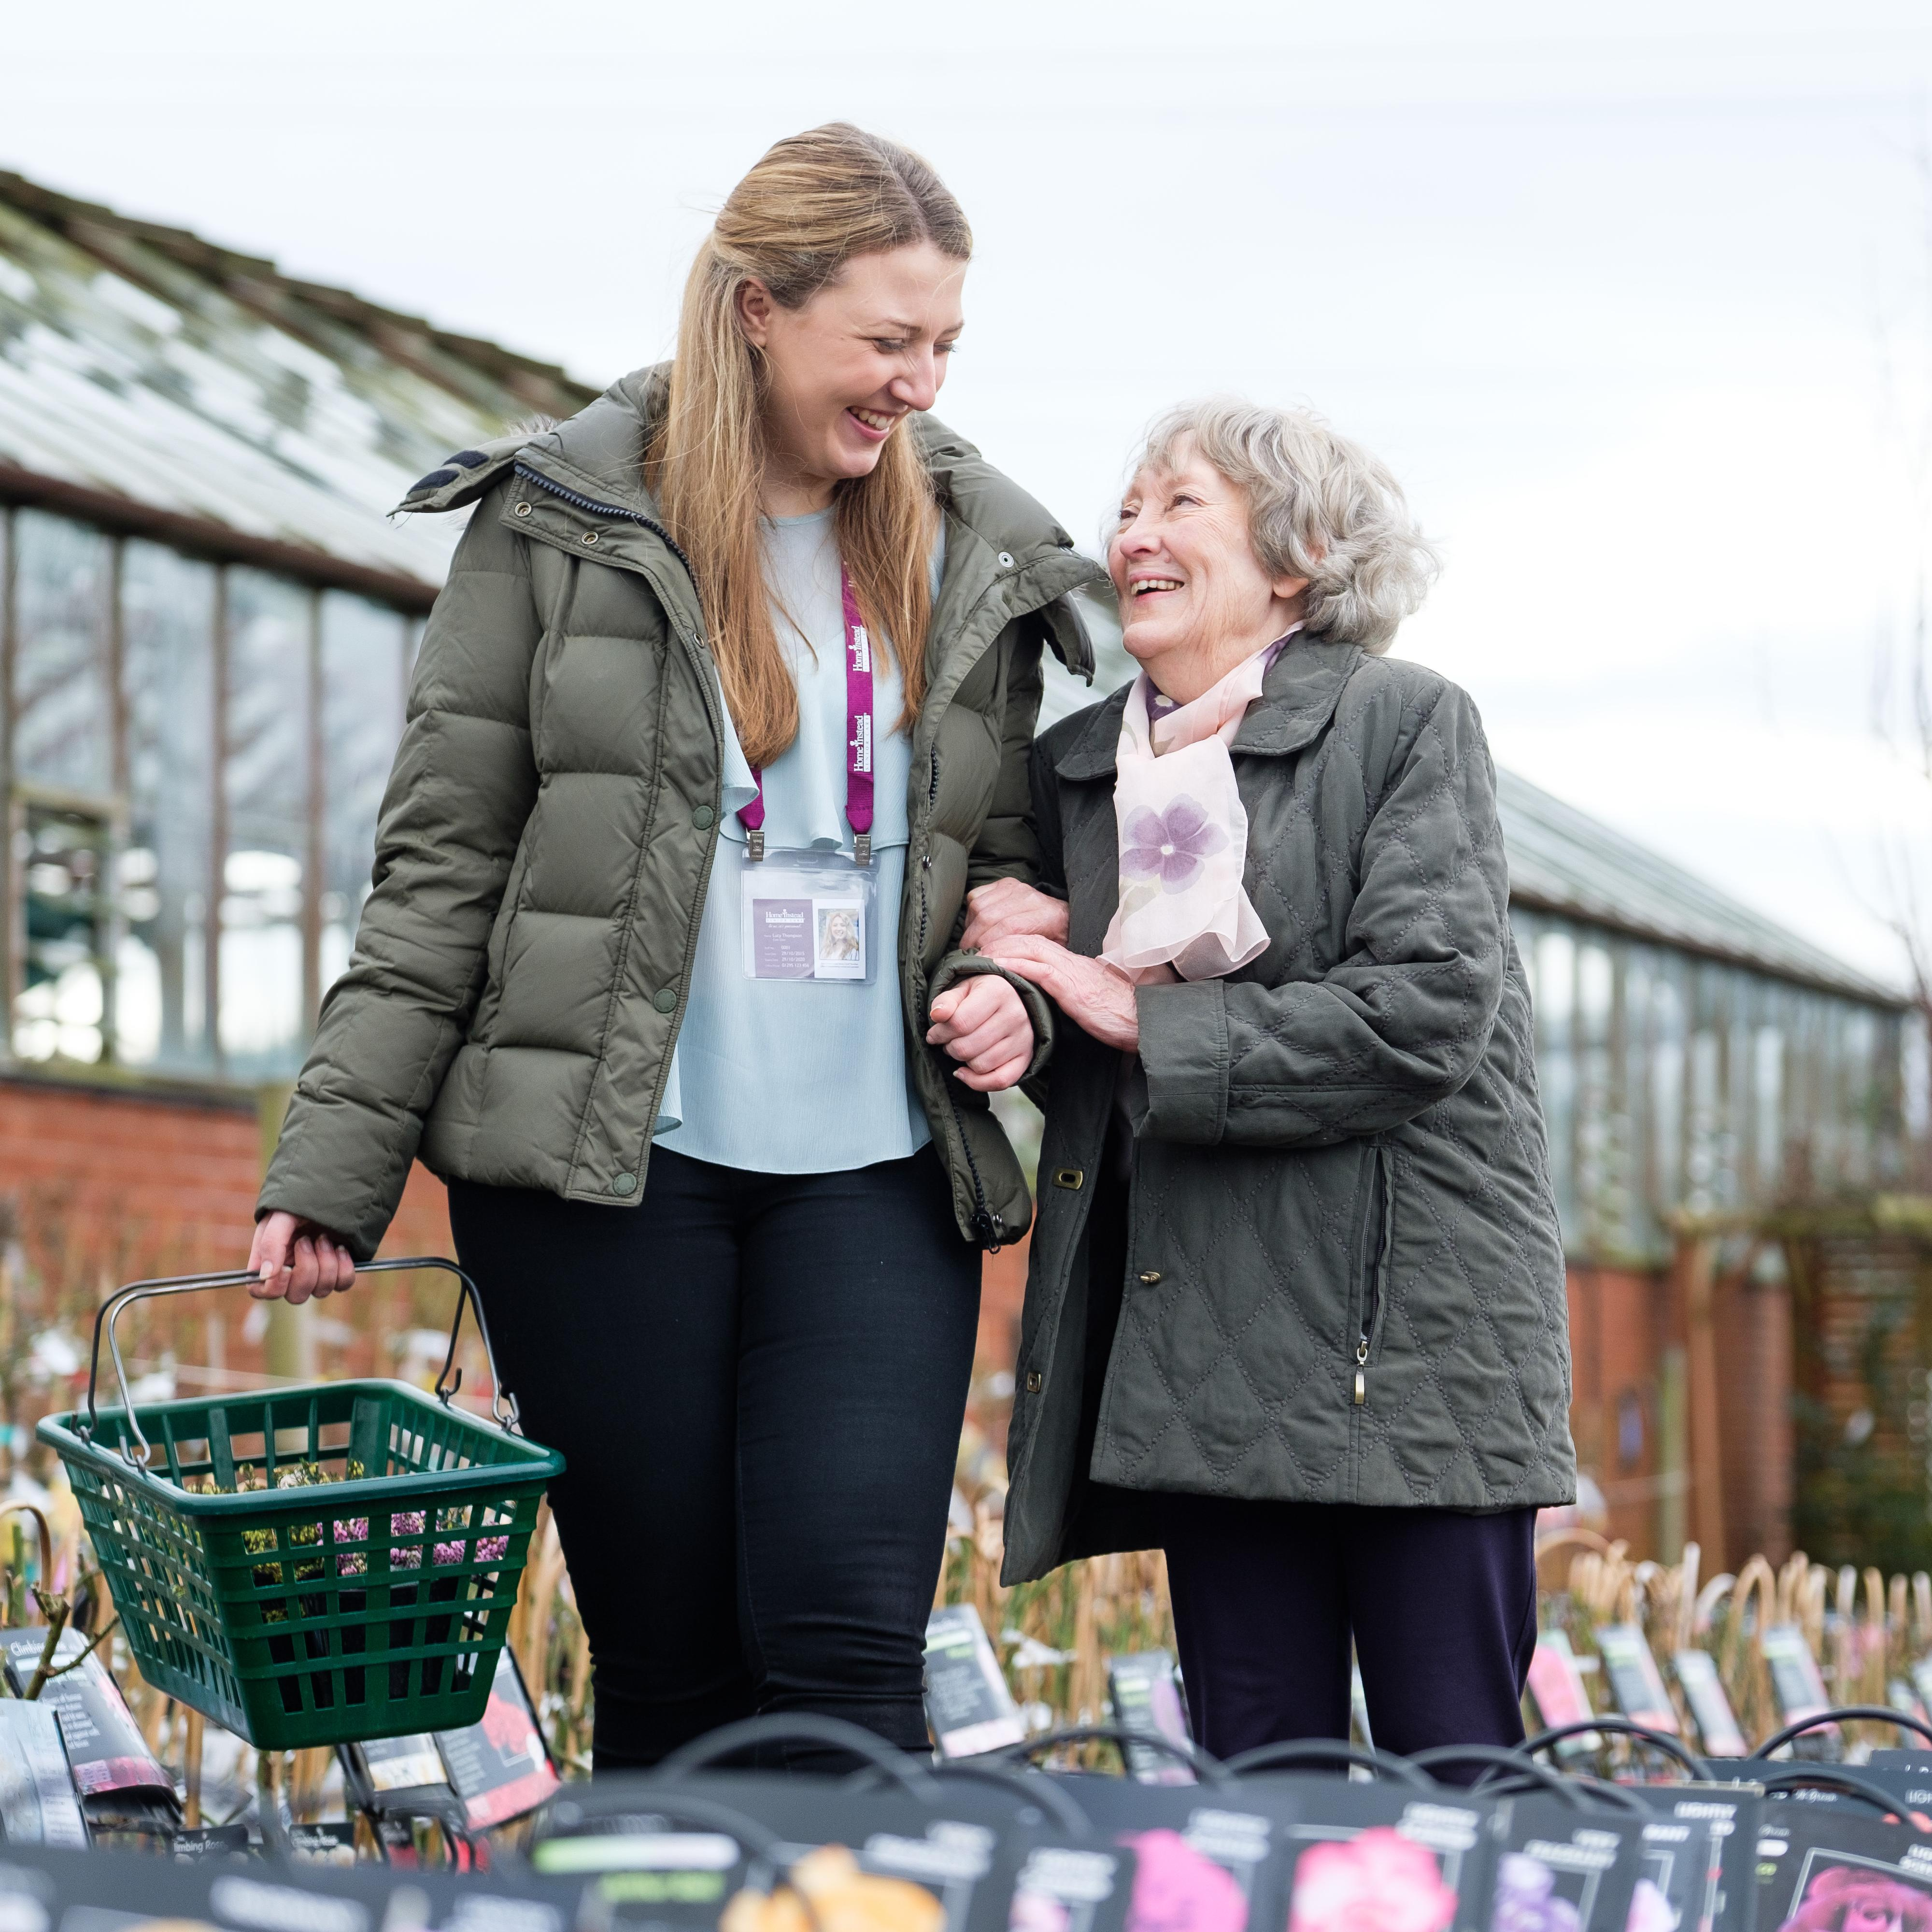 CAREGiver and Client Shopping together at the Garden centre